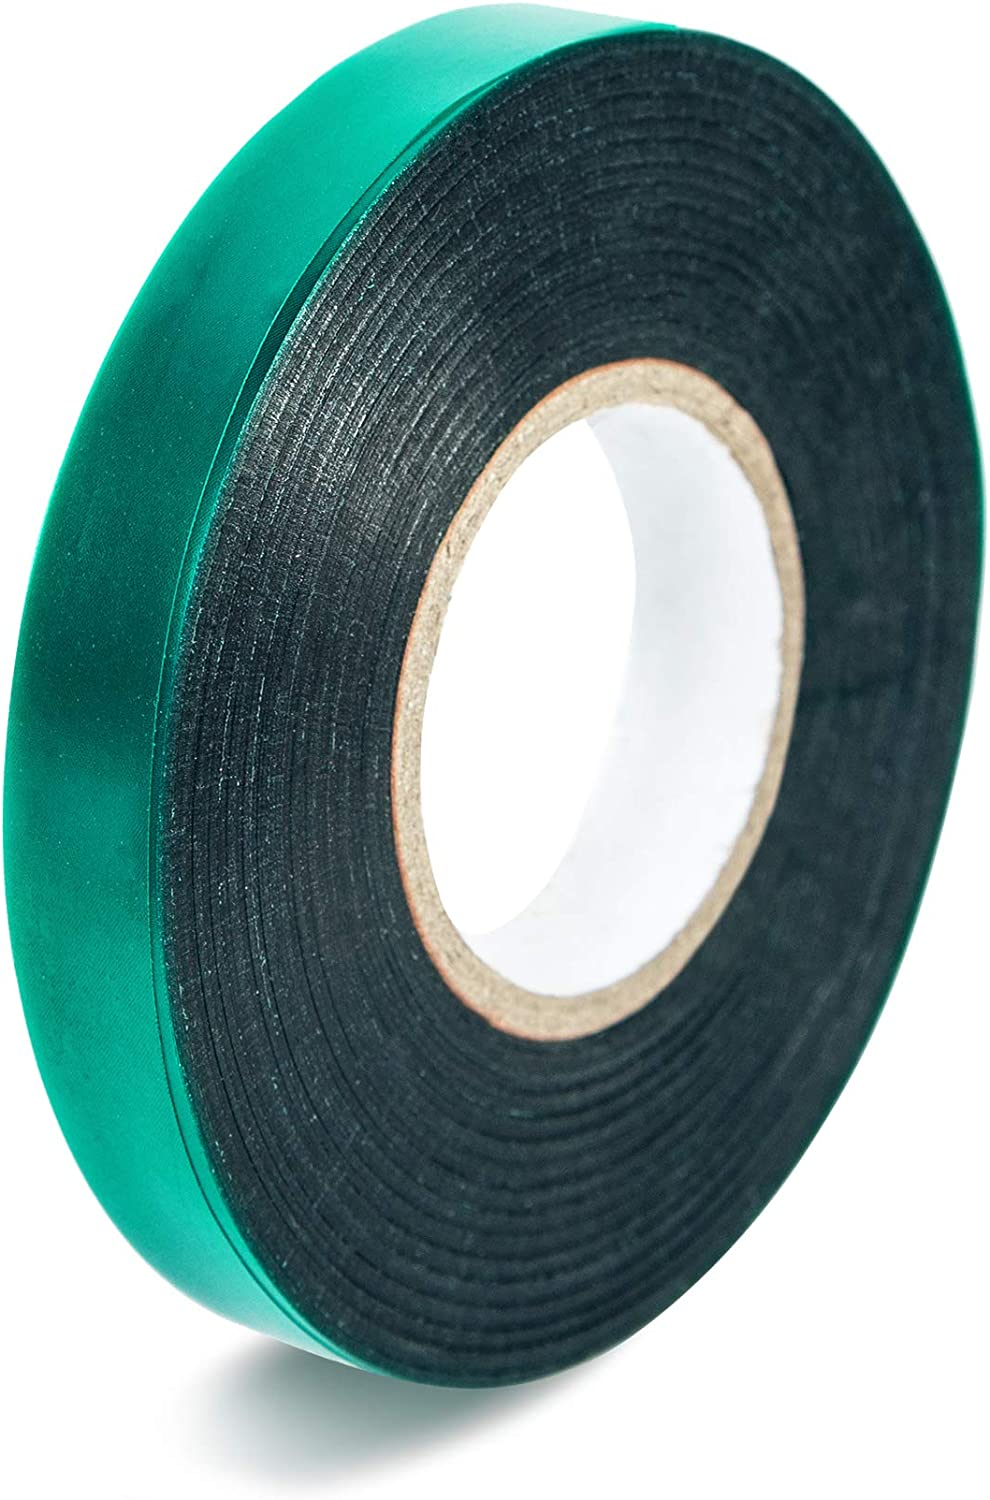 Unves Stretch Tie Tape Roll, 1/2